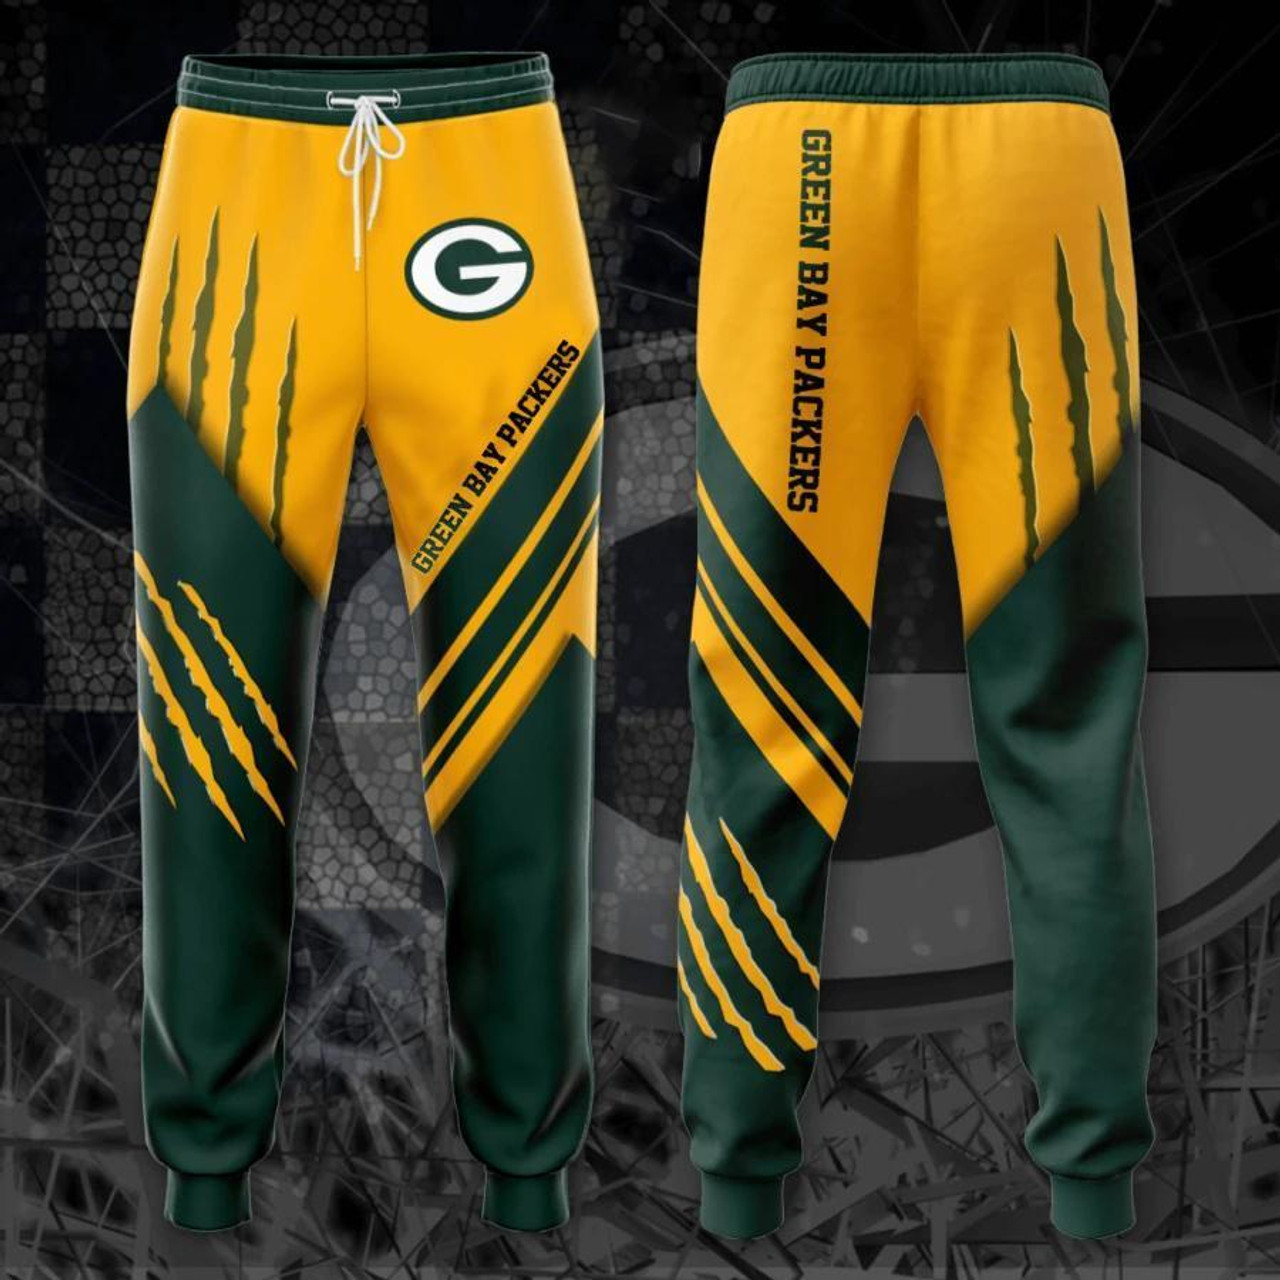 **(OFFICIAL-N.F.L.GREEN-BAY-PACKERS-TRENDY-TEAM-SPORT-SWEAT-PANTS & OFFICIAL-PACKERS-TEAM-LOGOS & OFFICIAL-CLASSIC-PACKERS-TEAM-COLORS/DETAILED-CUSTOM-3D-GRAPHIC-DOUBLE-SIDED-PRINTED/WARM-PREMIUM-TRENDY-PACKERS-FASHION-GAME-DAY-TEAM-SWEAT-PANTS)**